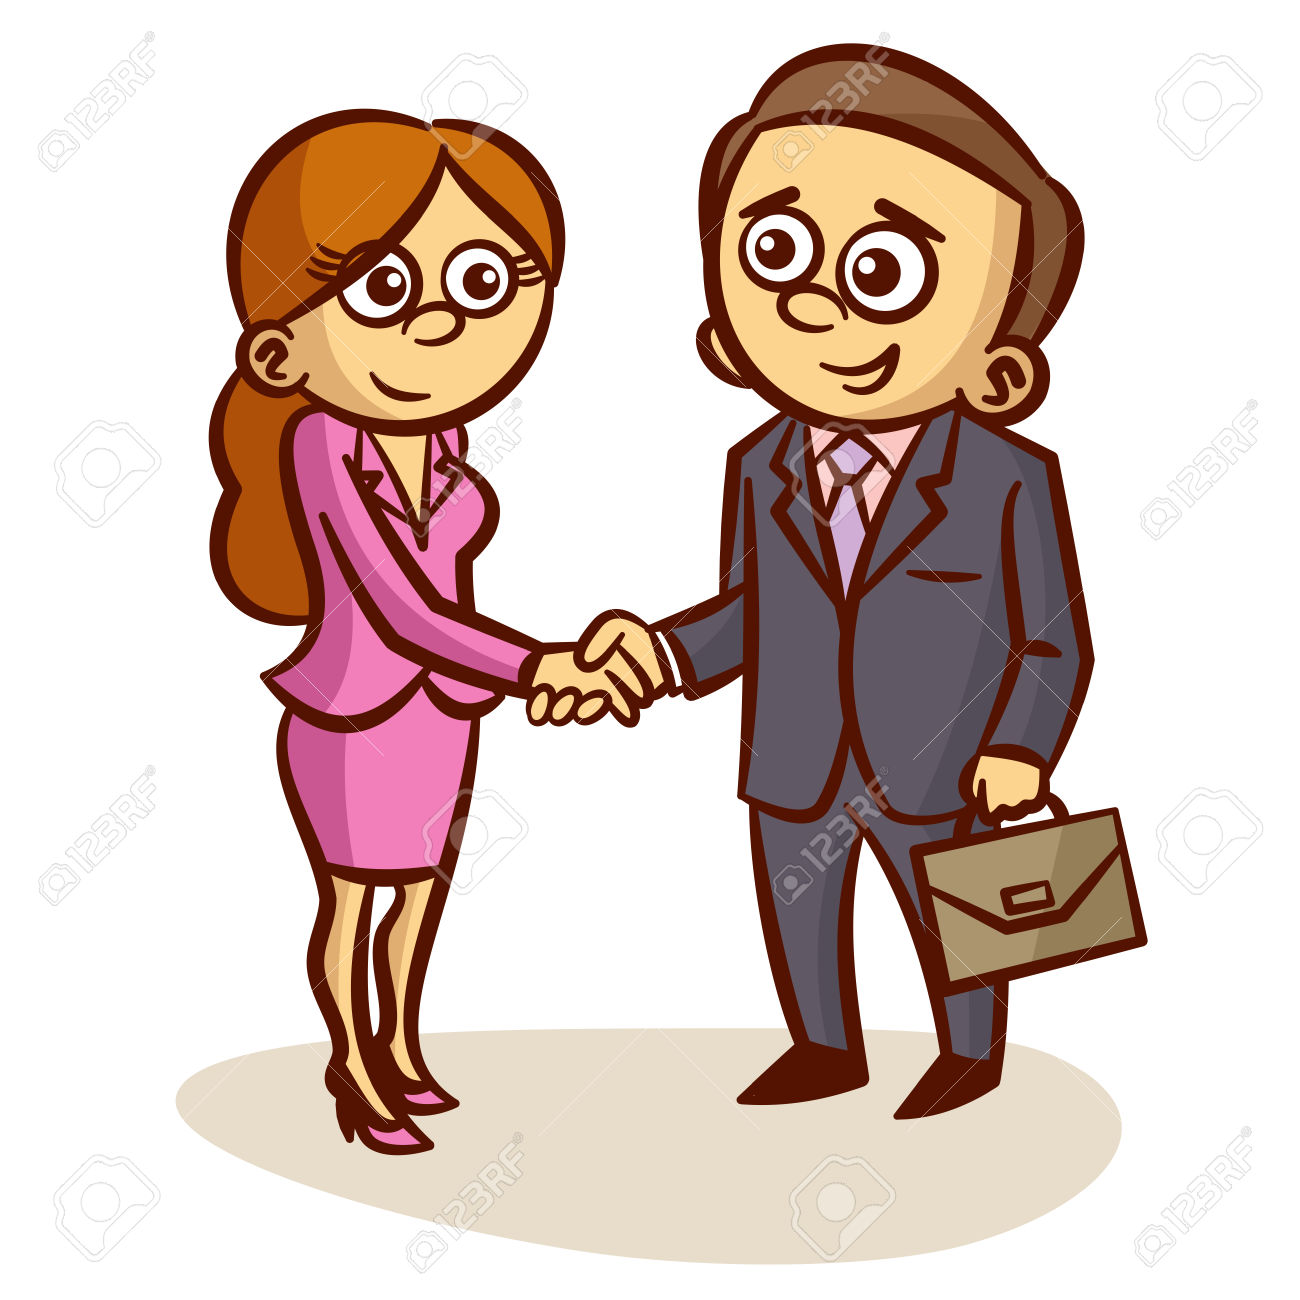 Adults shaking hands clipart clipart images gallery for free.